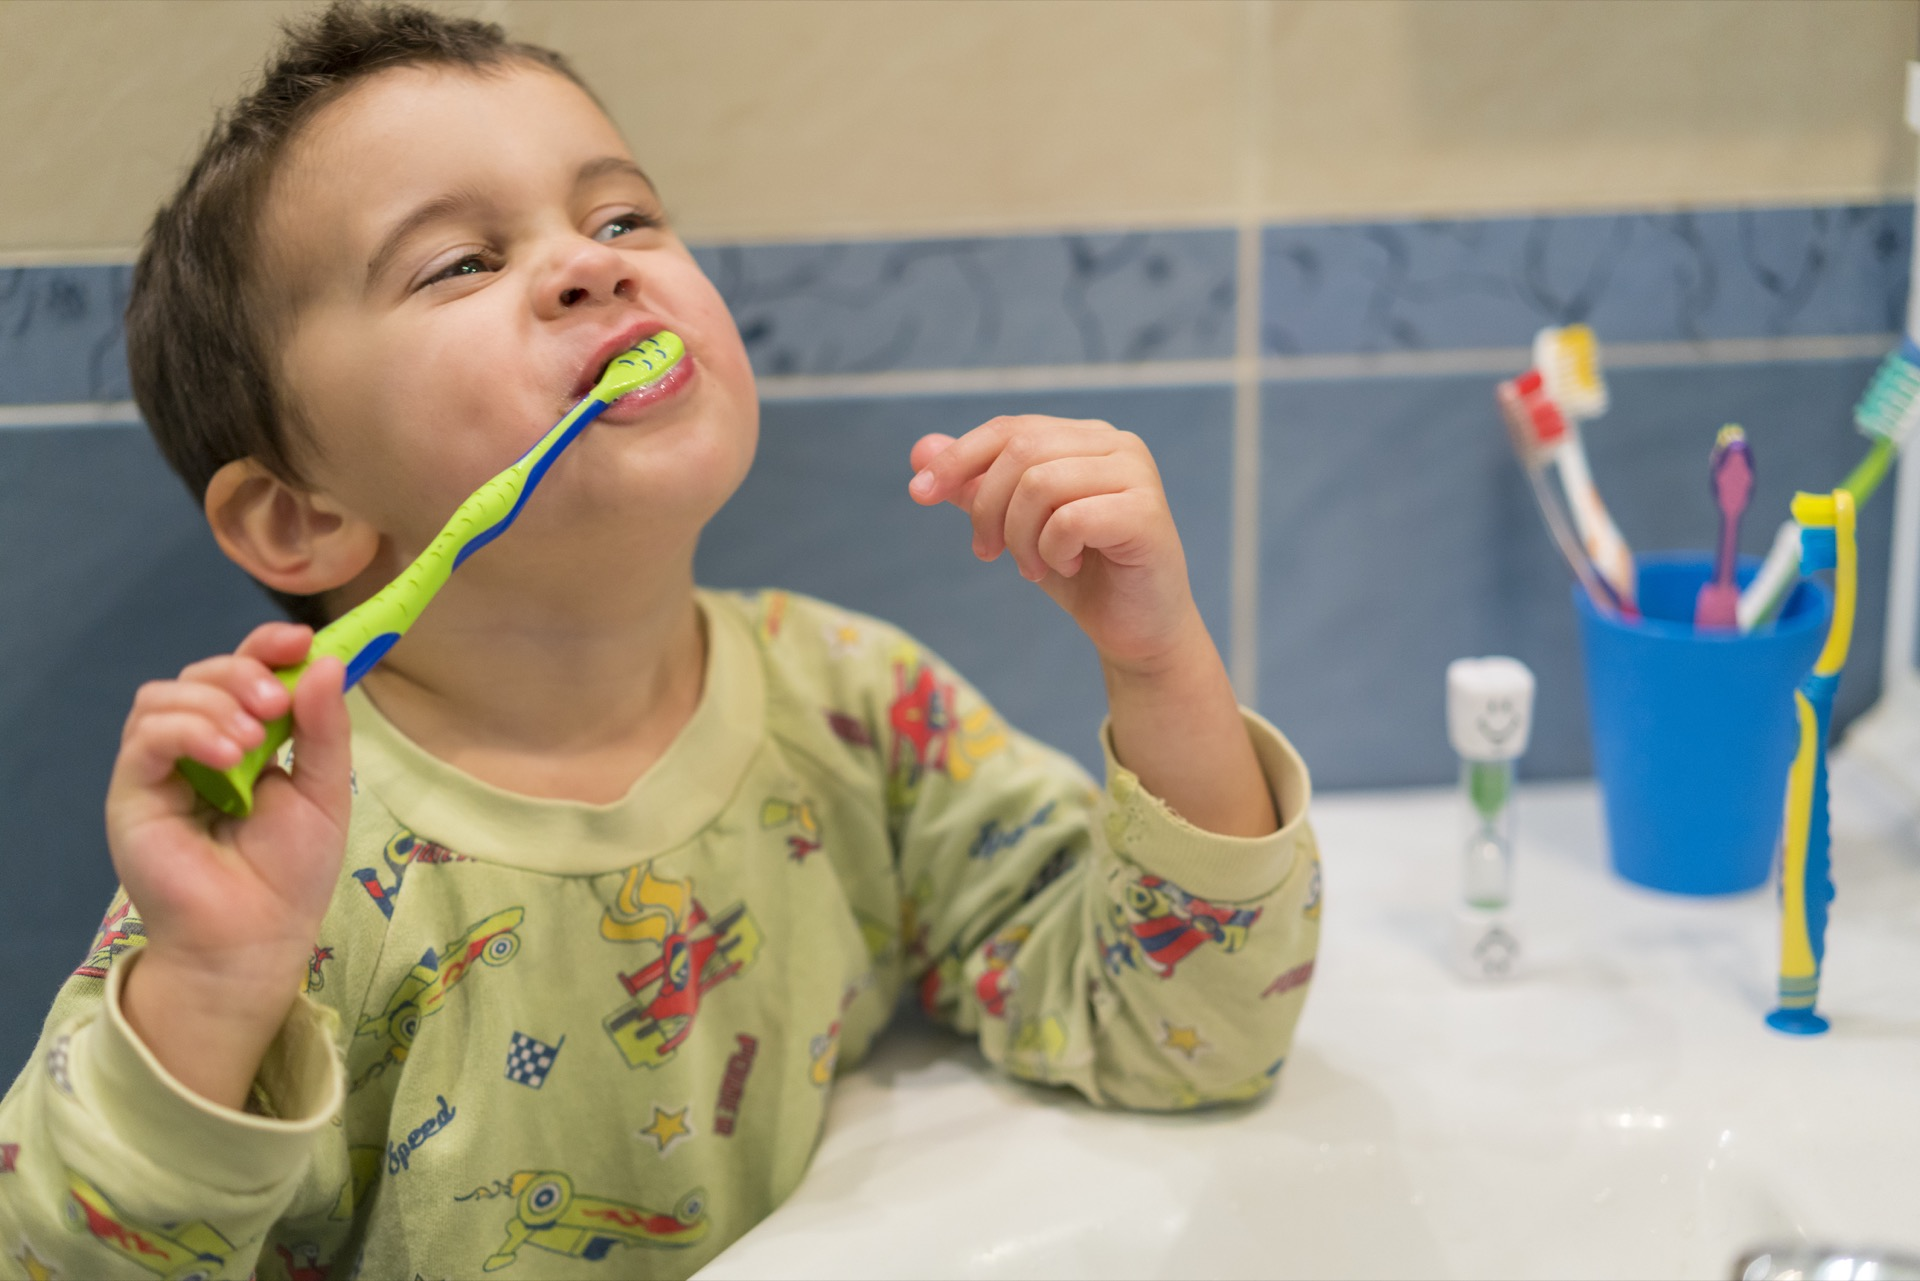 Toddler learning the proper tooth-brushing technique